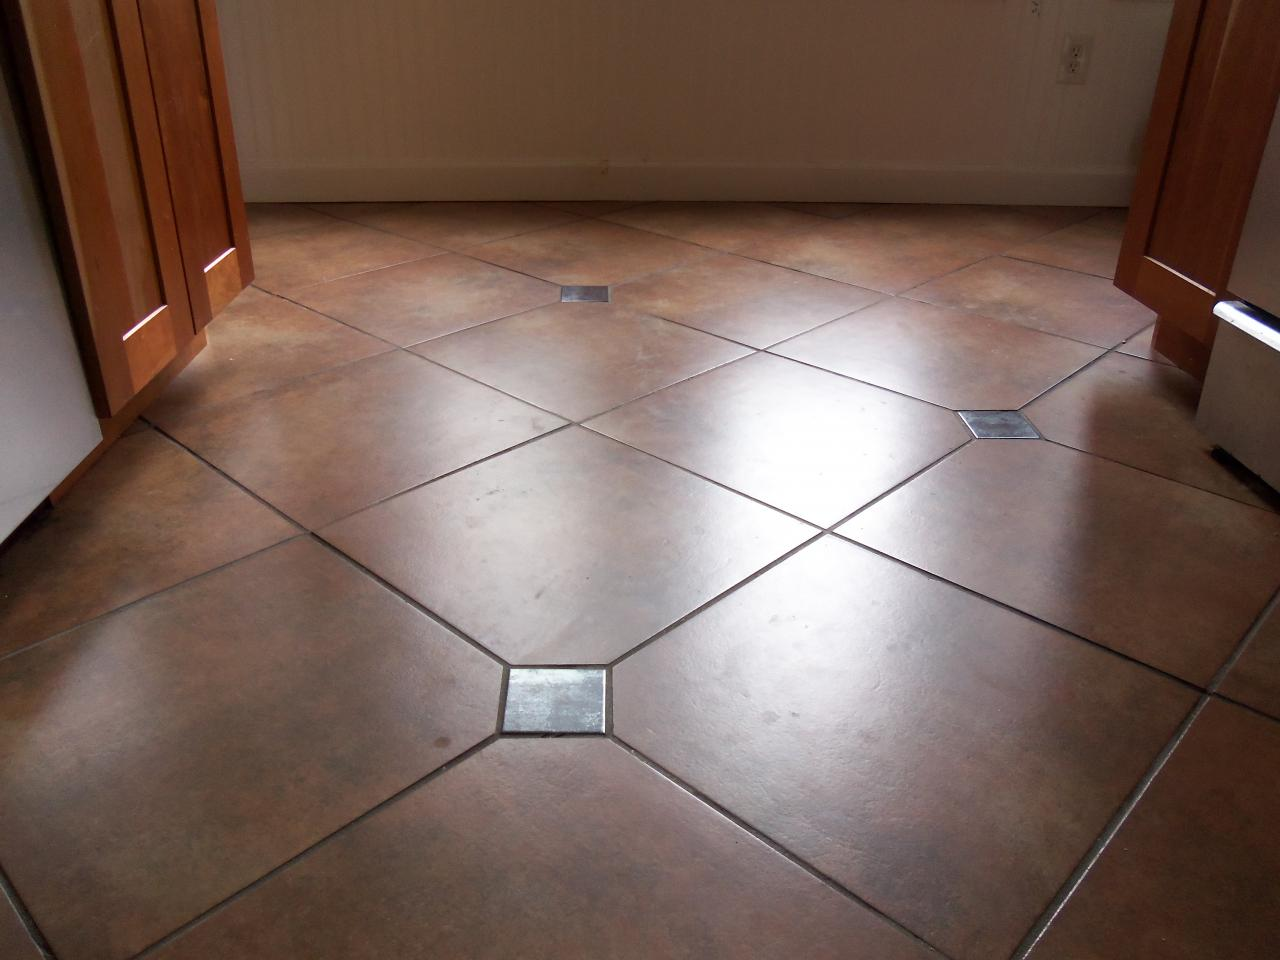 Gooden 39 s floors and more ceramic tile natural stone for Floor and more